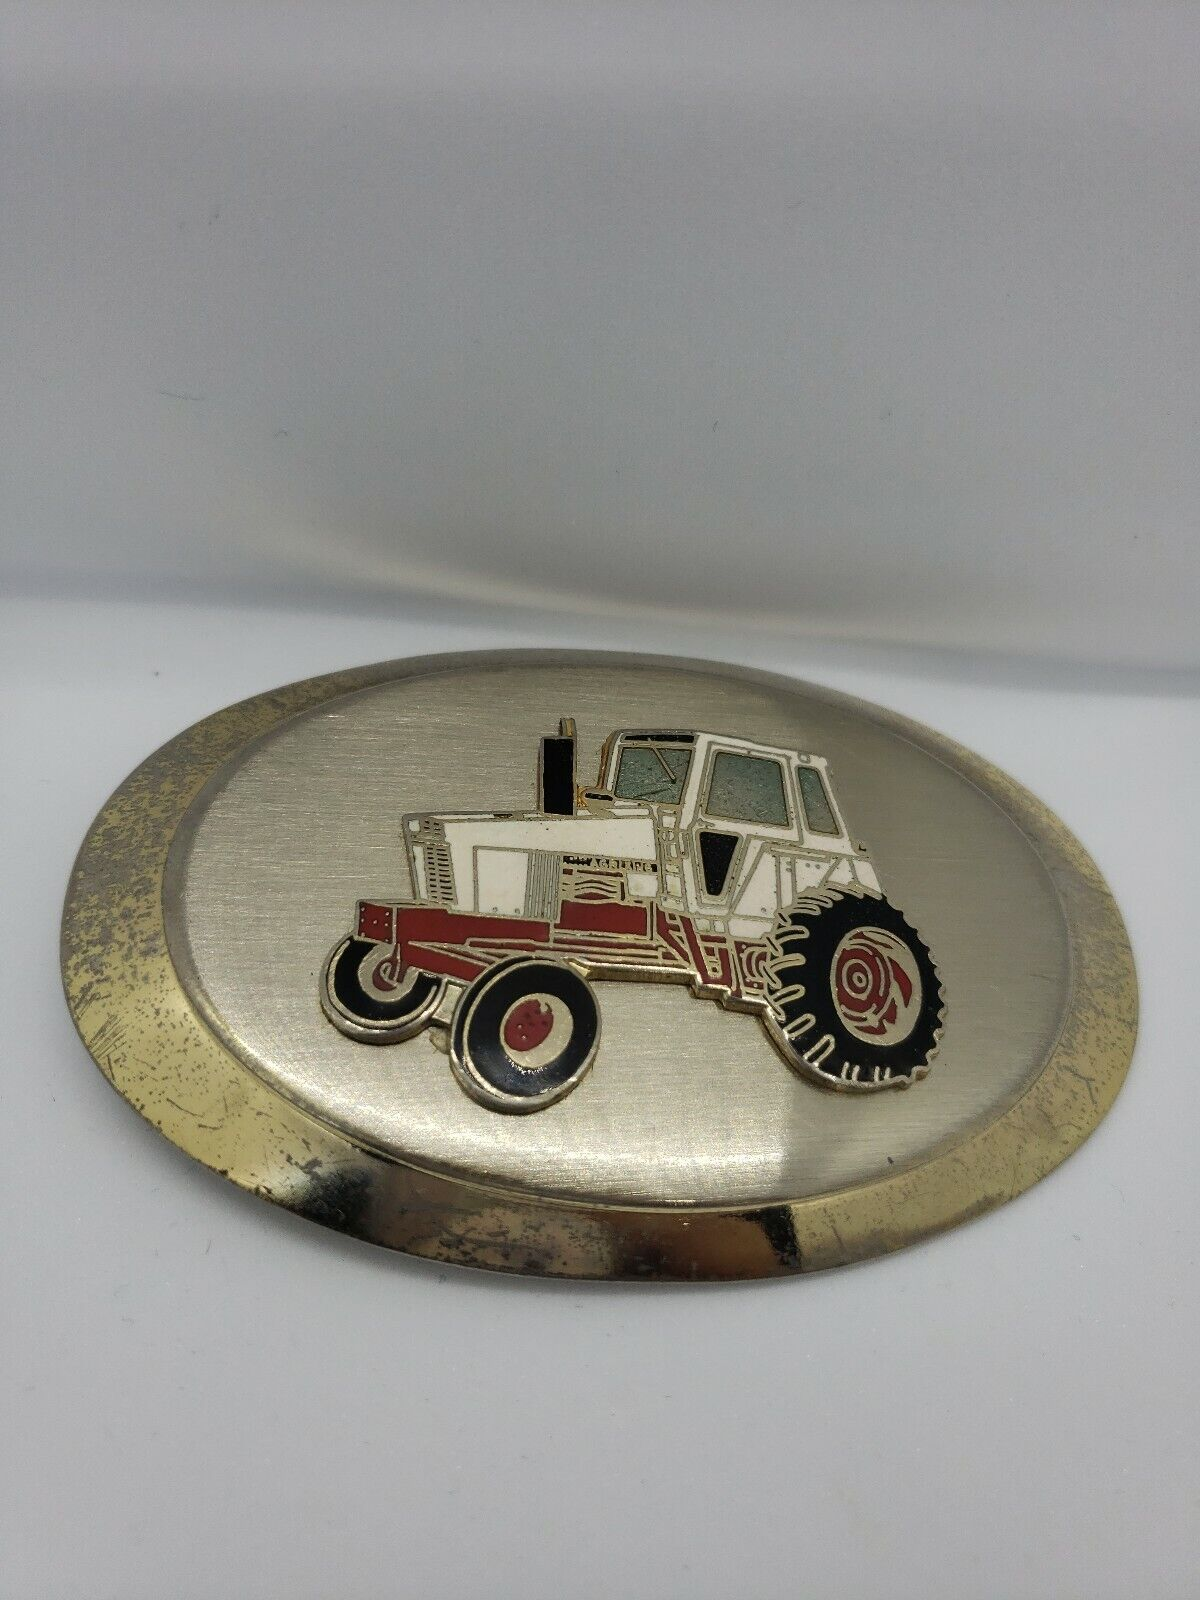 Gold Tone Tractor Belt Buckle White Red Farmer Rancher Crops 3 3/4 Length 2 1/4